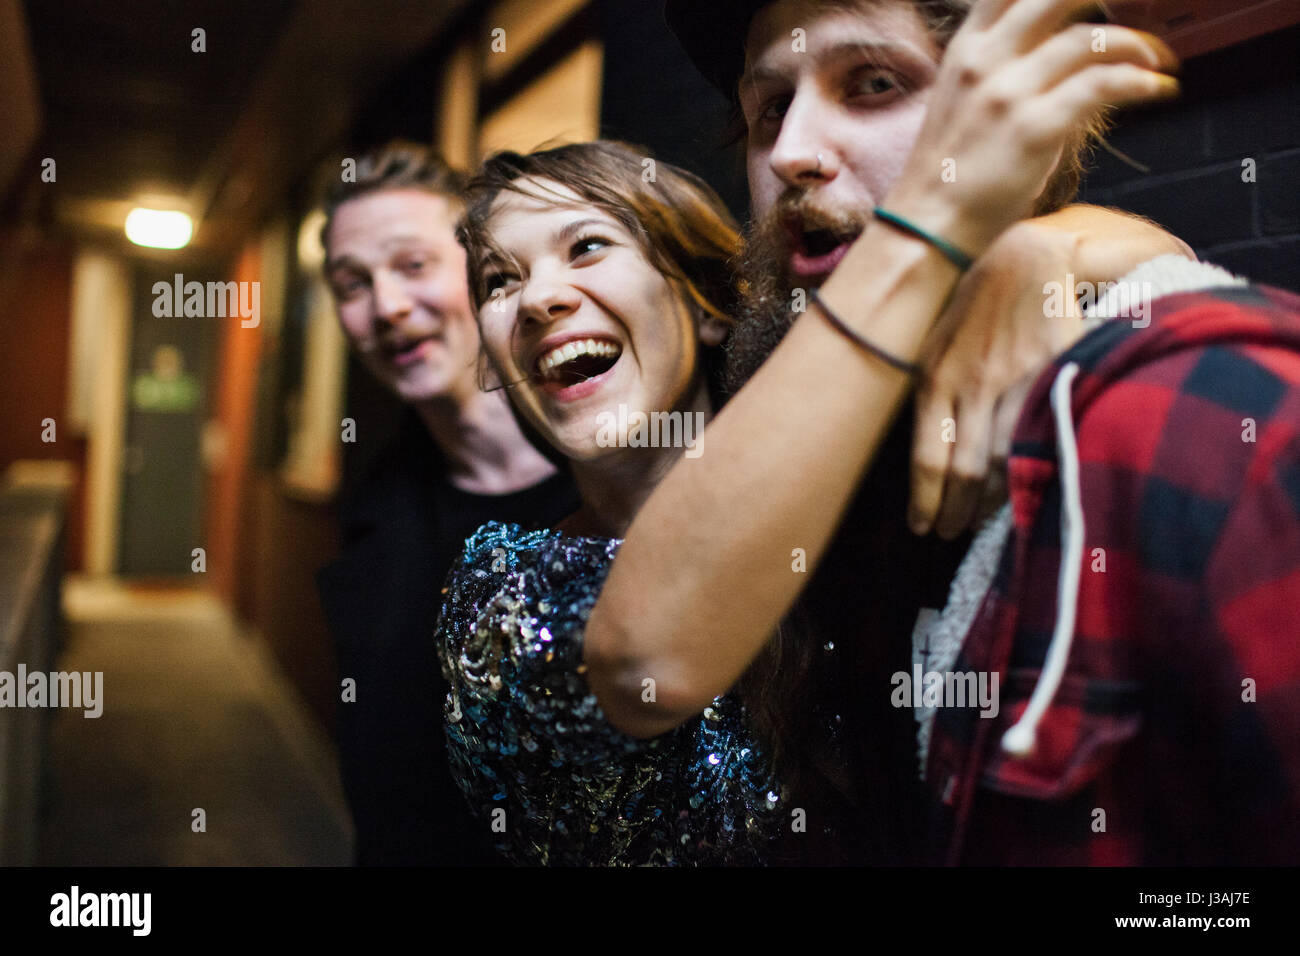 Smiling young woman embracing a friend - Stock Image